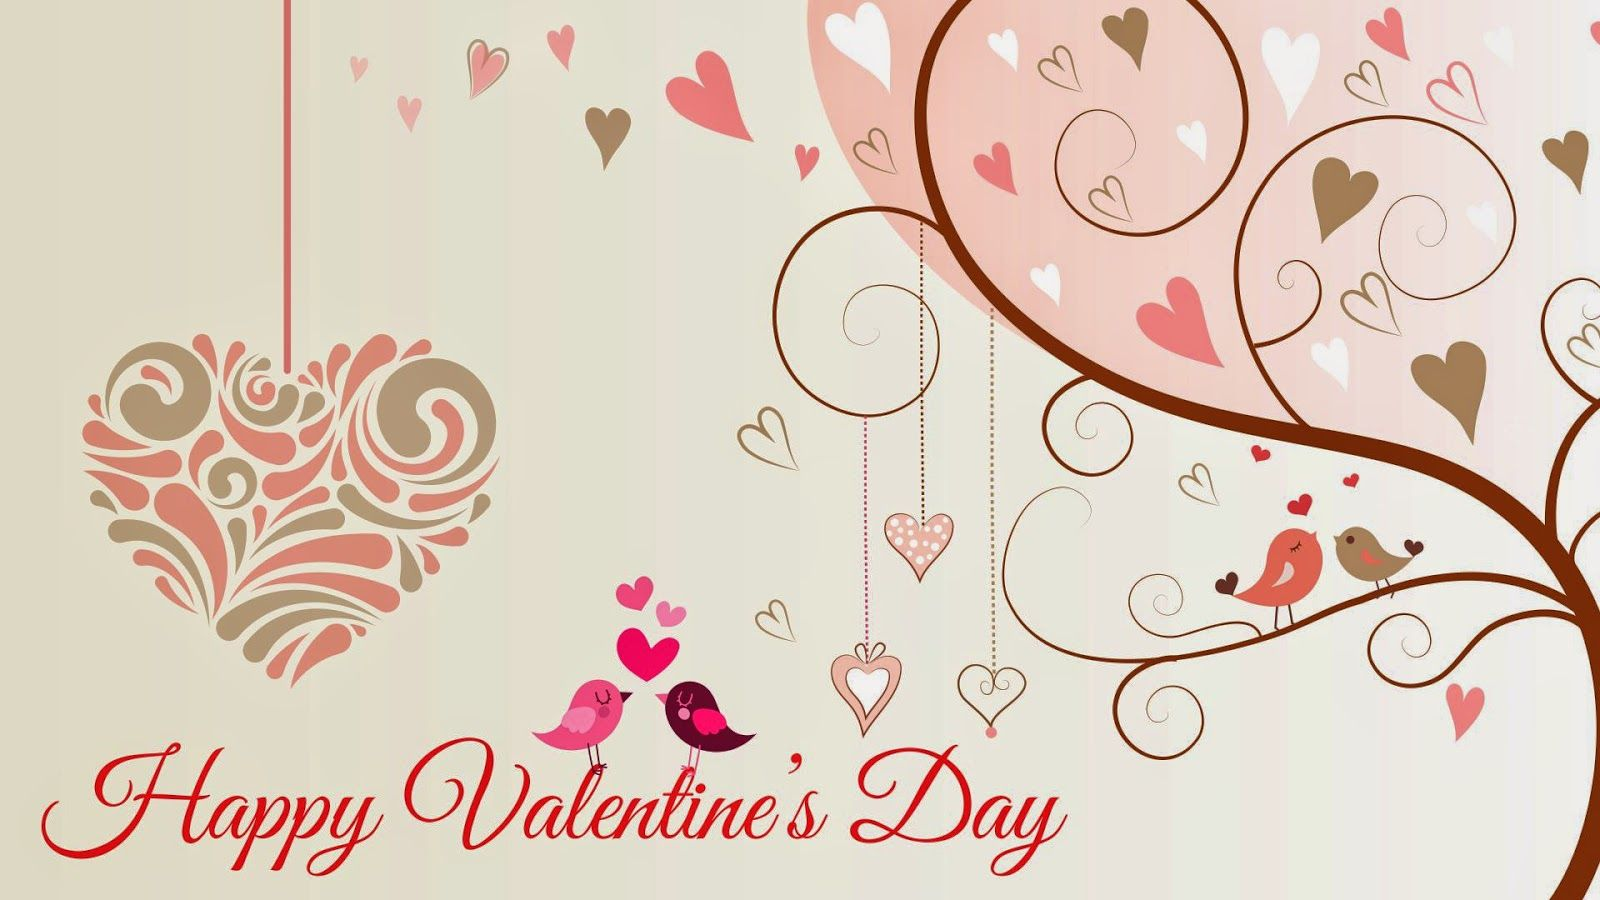 Pin By Julie Simons On Pink Valentines Happy Valentines Day Card Happy Valentines Day Images Happy Valentines Day